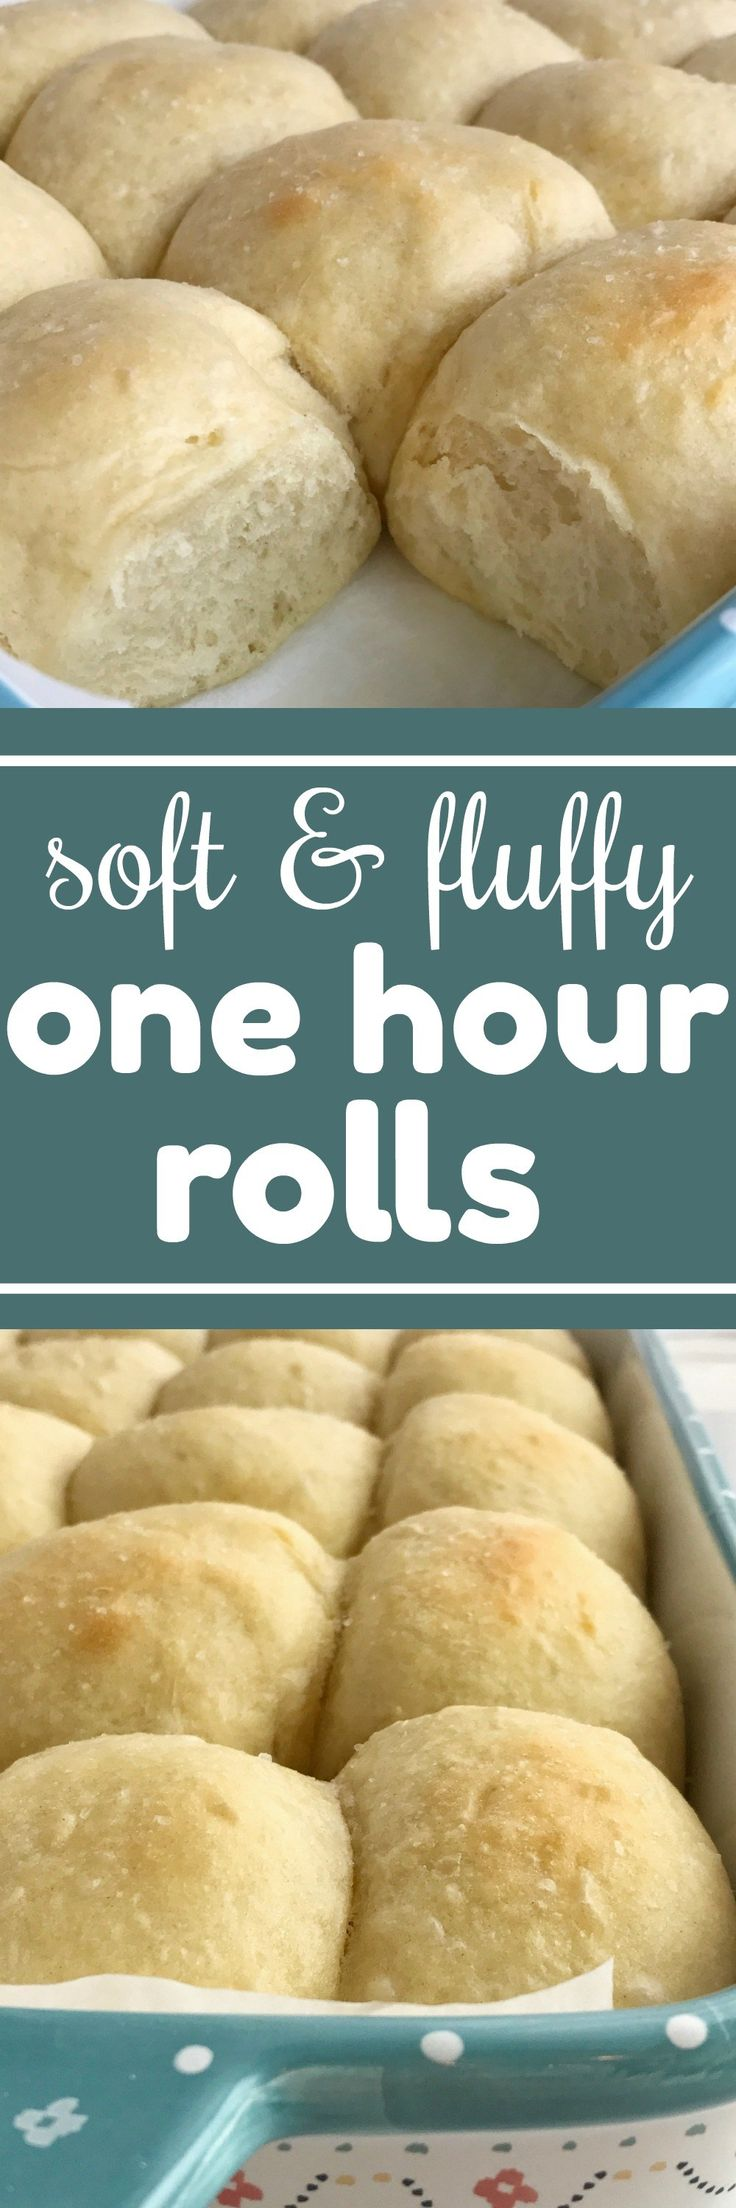 Soft, fluffy, & buttery rolls in just one hour! Yes it can be done and you won't believe how delicious and fail-proof these rolls are. These one hour rolls are perfect for Thanksgiving dinner or easy enough for a weeknight dinner